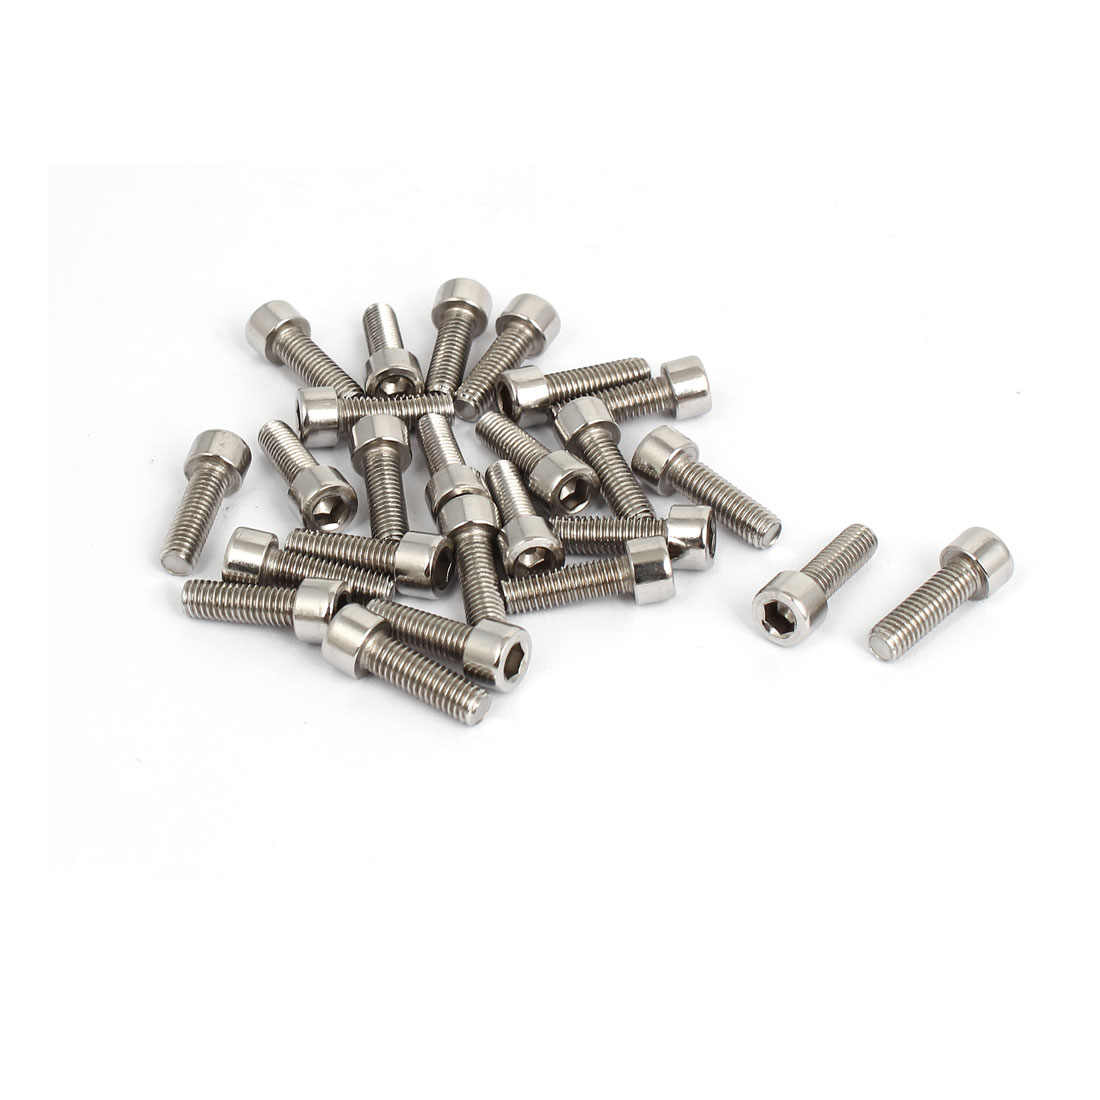 25pcs 4mm Stainless Steel Hex Key Socket Head Cap Screws Bolts M5x0.8mmx16mm